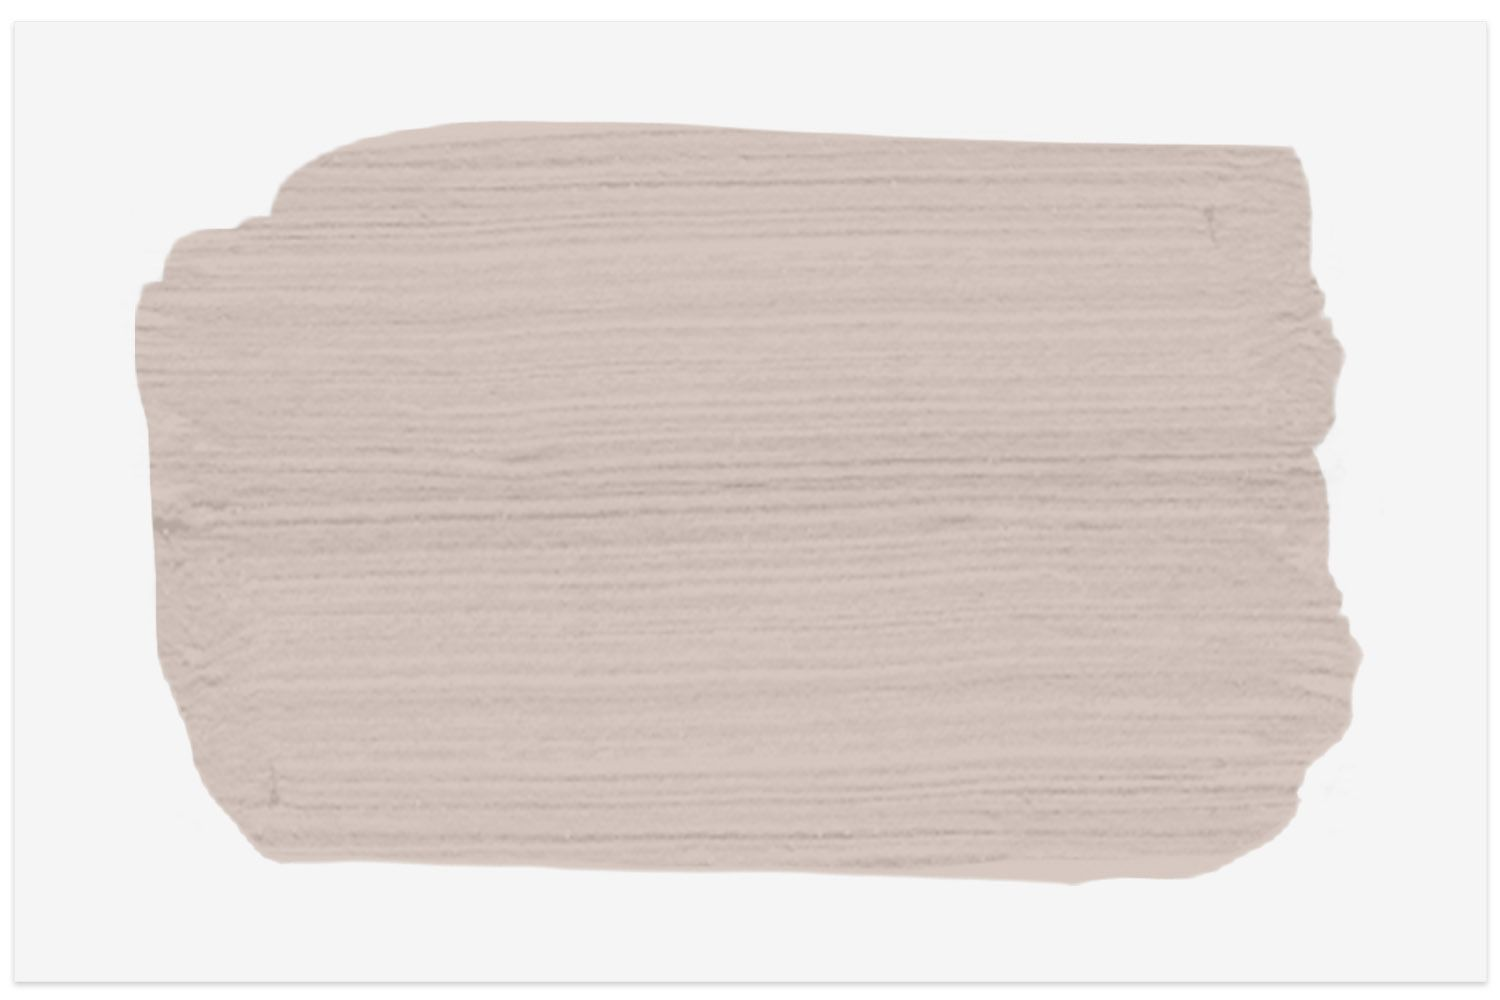 Unfussy Beige paint swatch from Sherwin-Williams